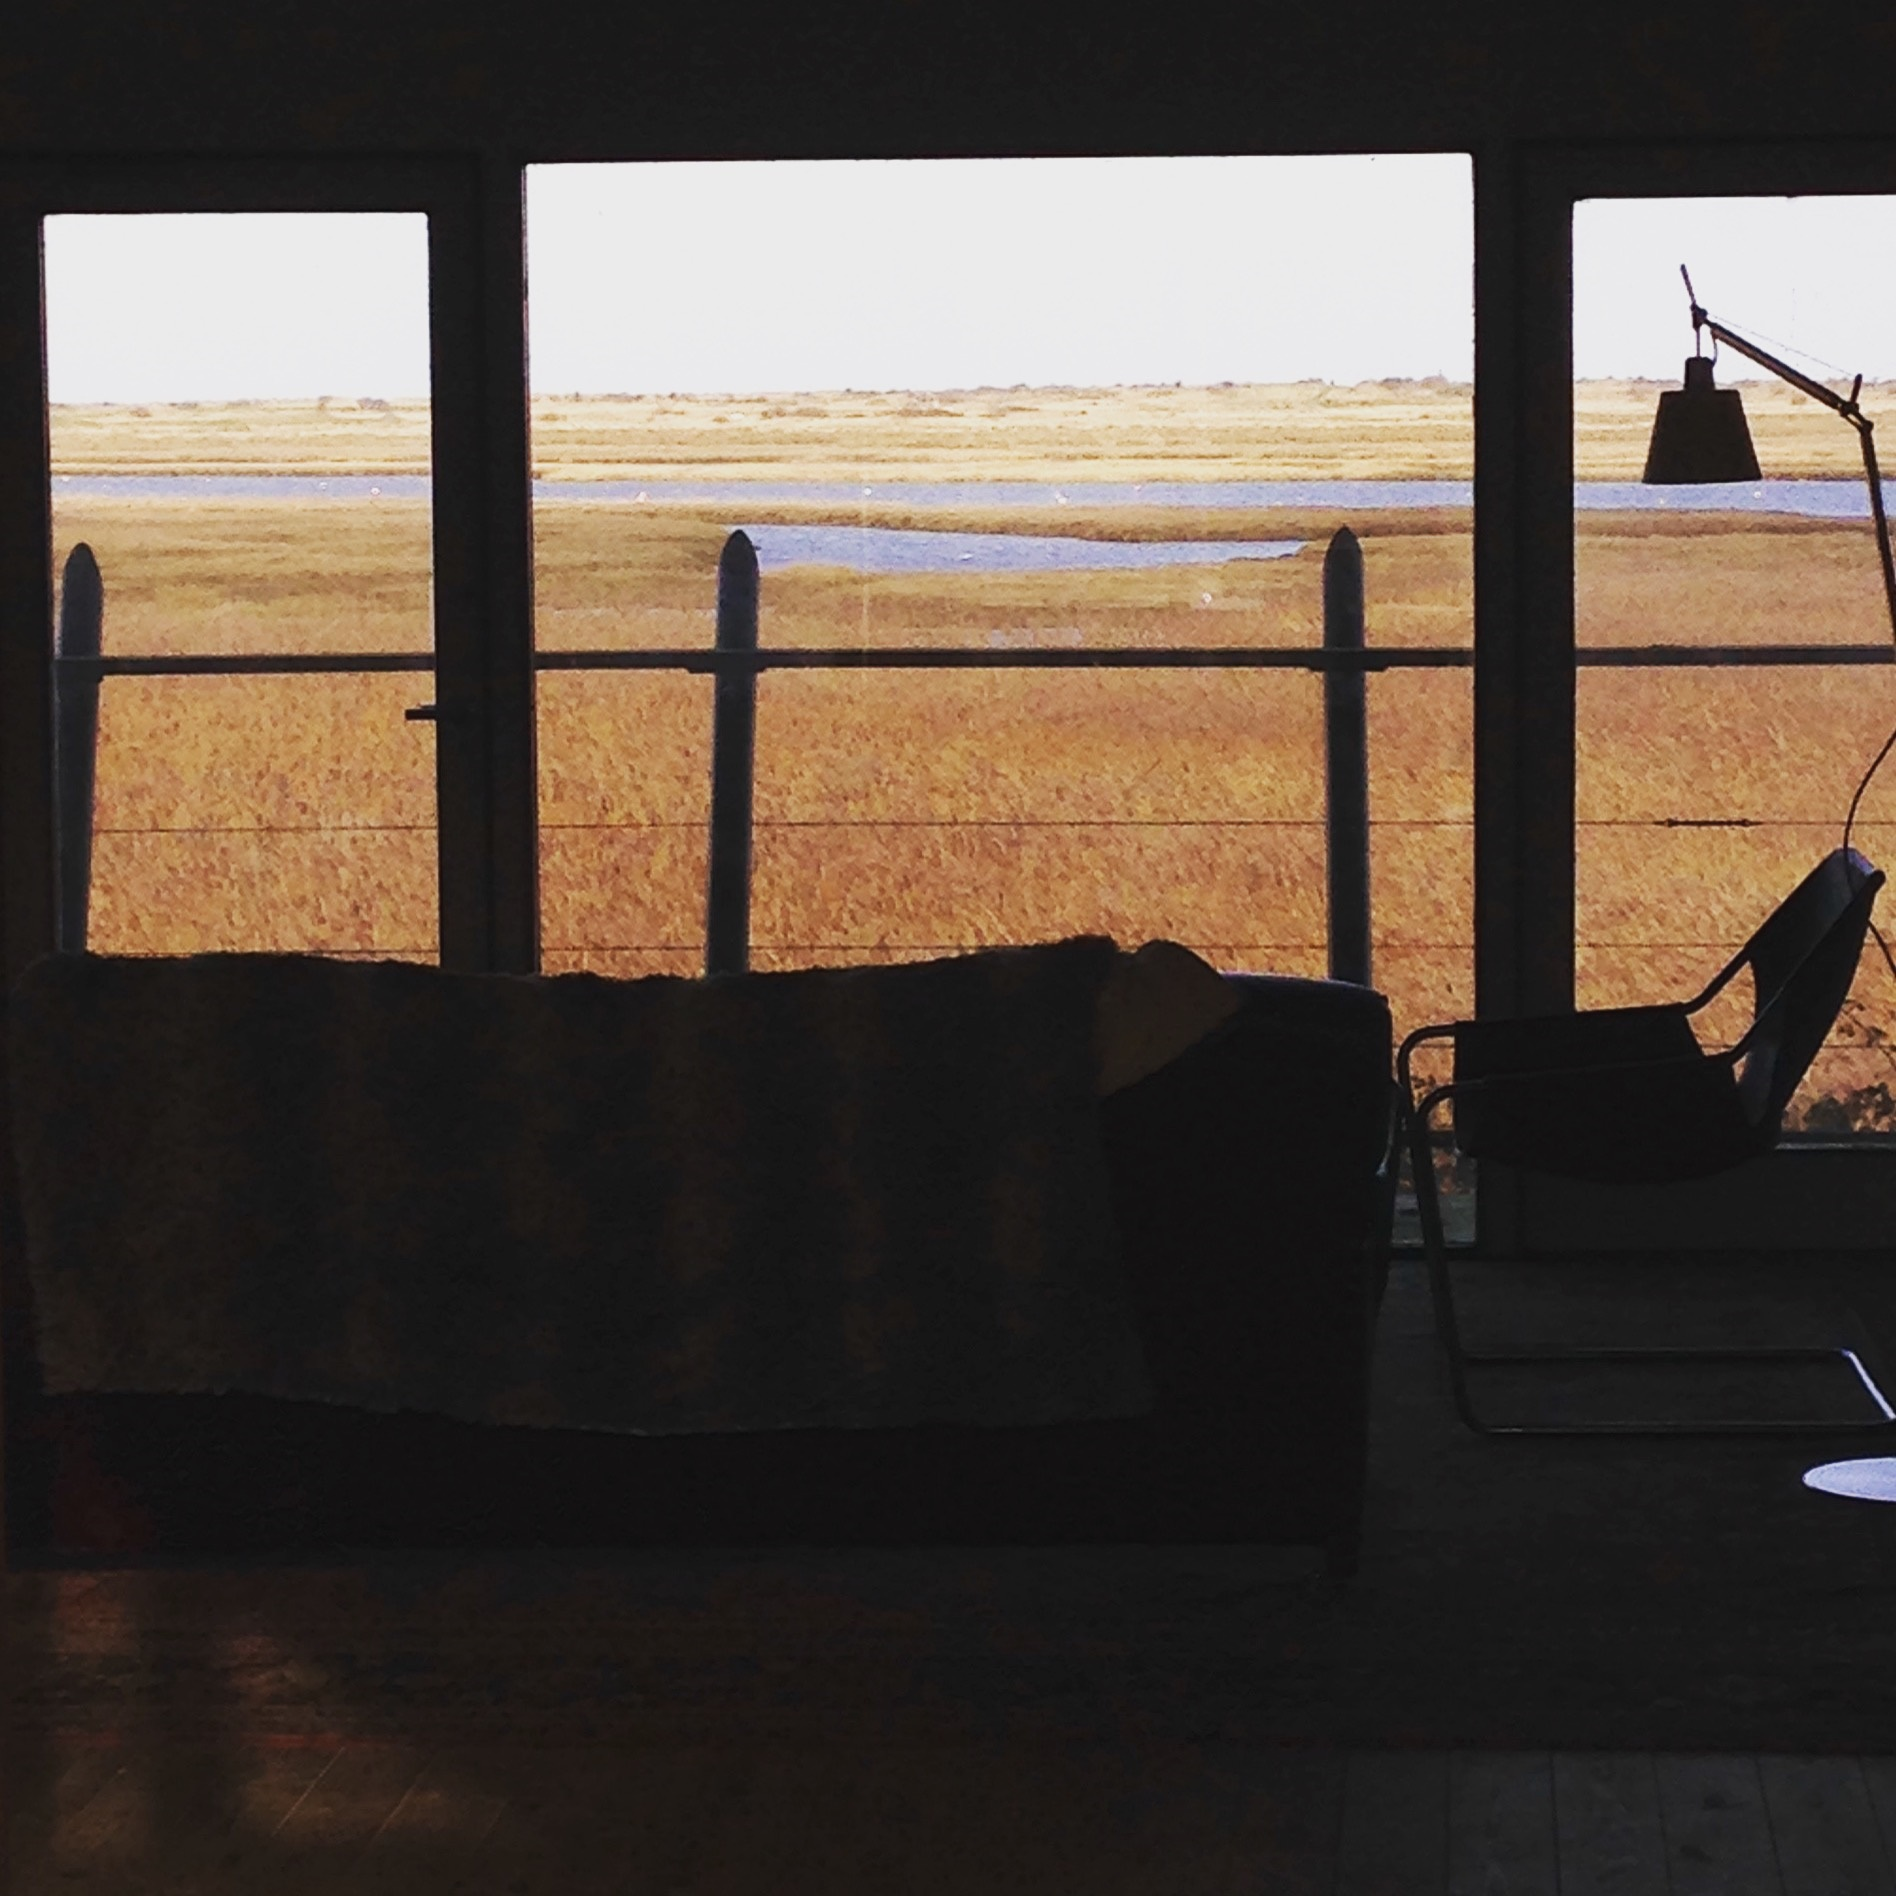 view on the salt marshes, Brancaster Staithe